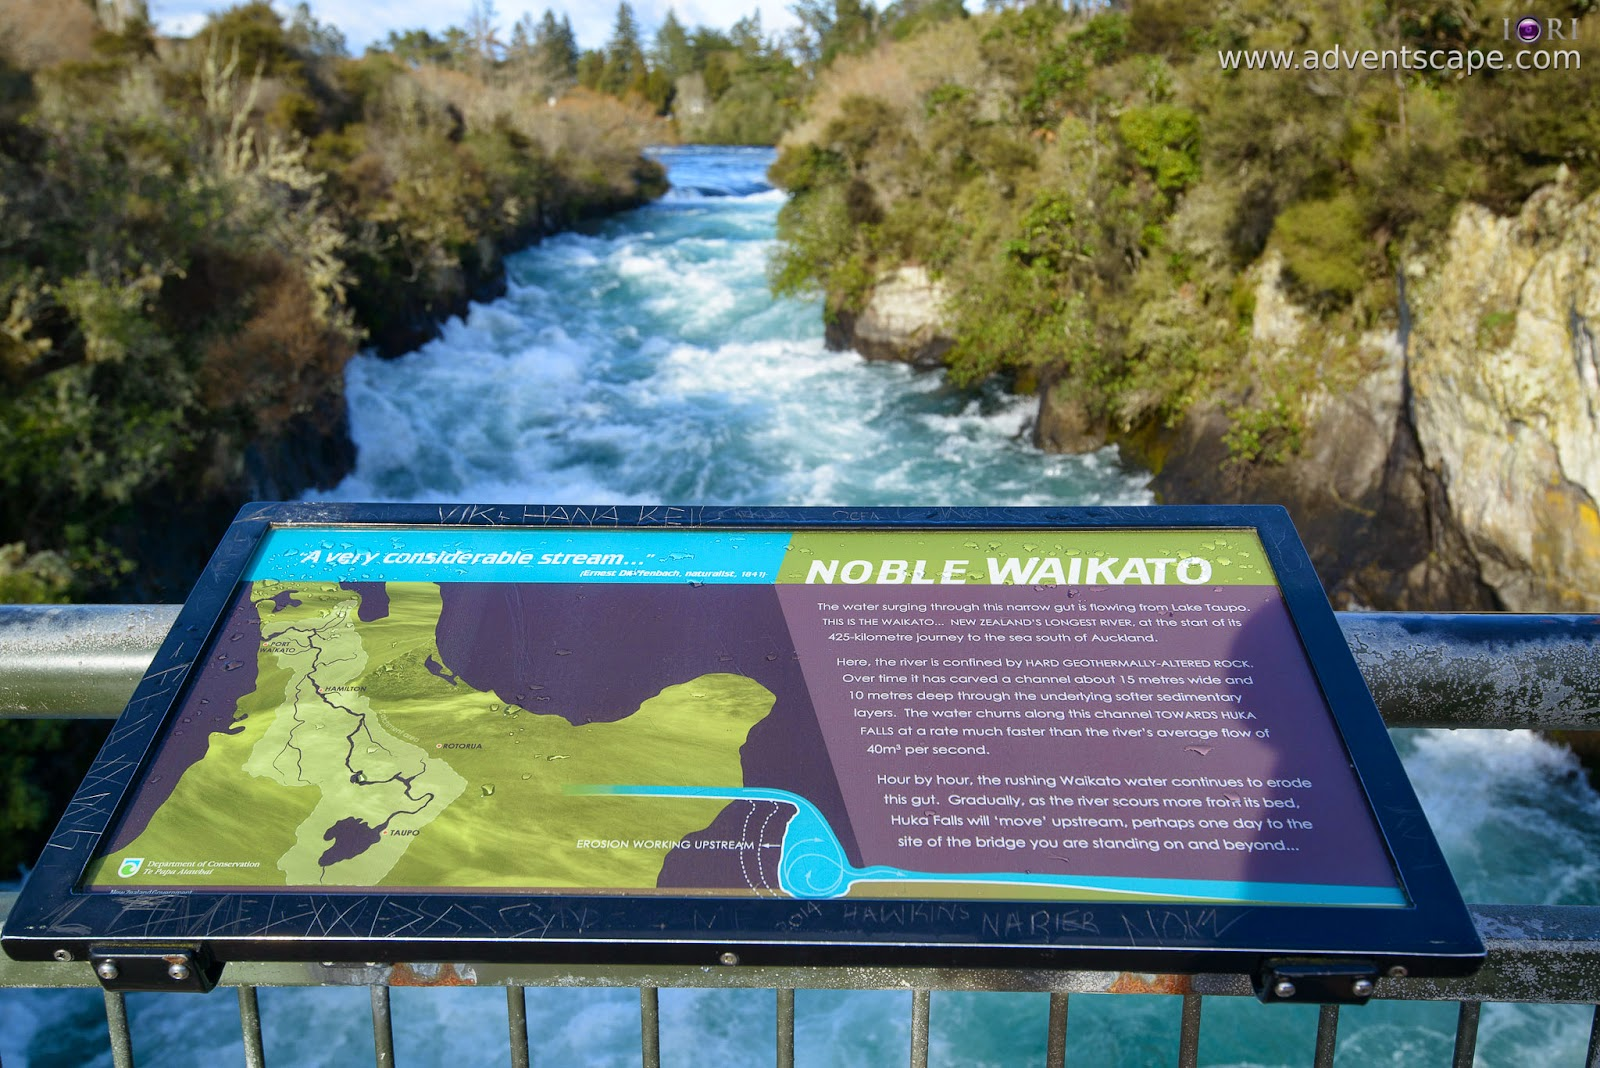 adventscape, Australian Landscape Photographer, Huka Falls, iori, New Zealand, New Zealand longest River, North Island, Philip Avellana, places to visit, Taupo, tour, tourism, travel, Waikato, waterfalls